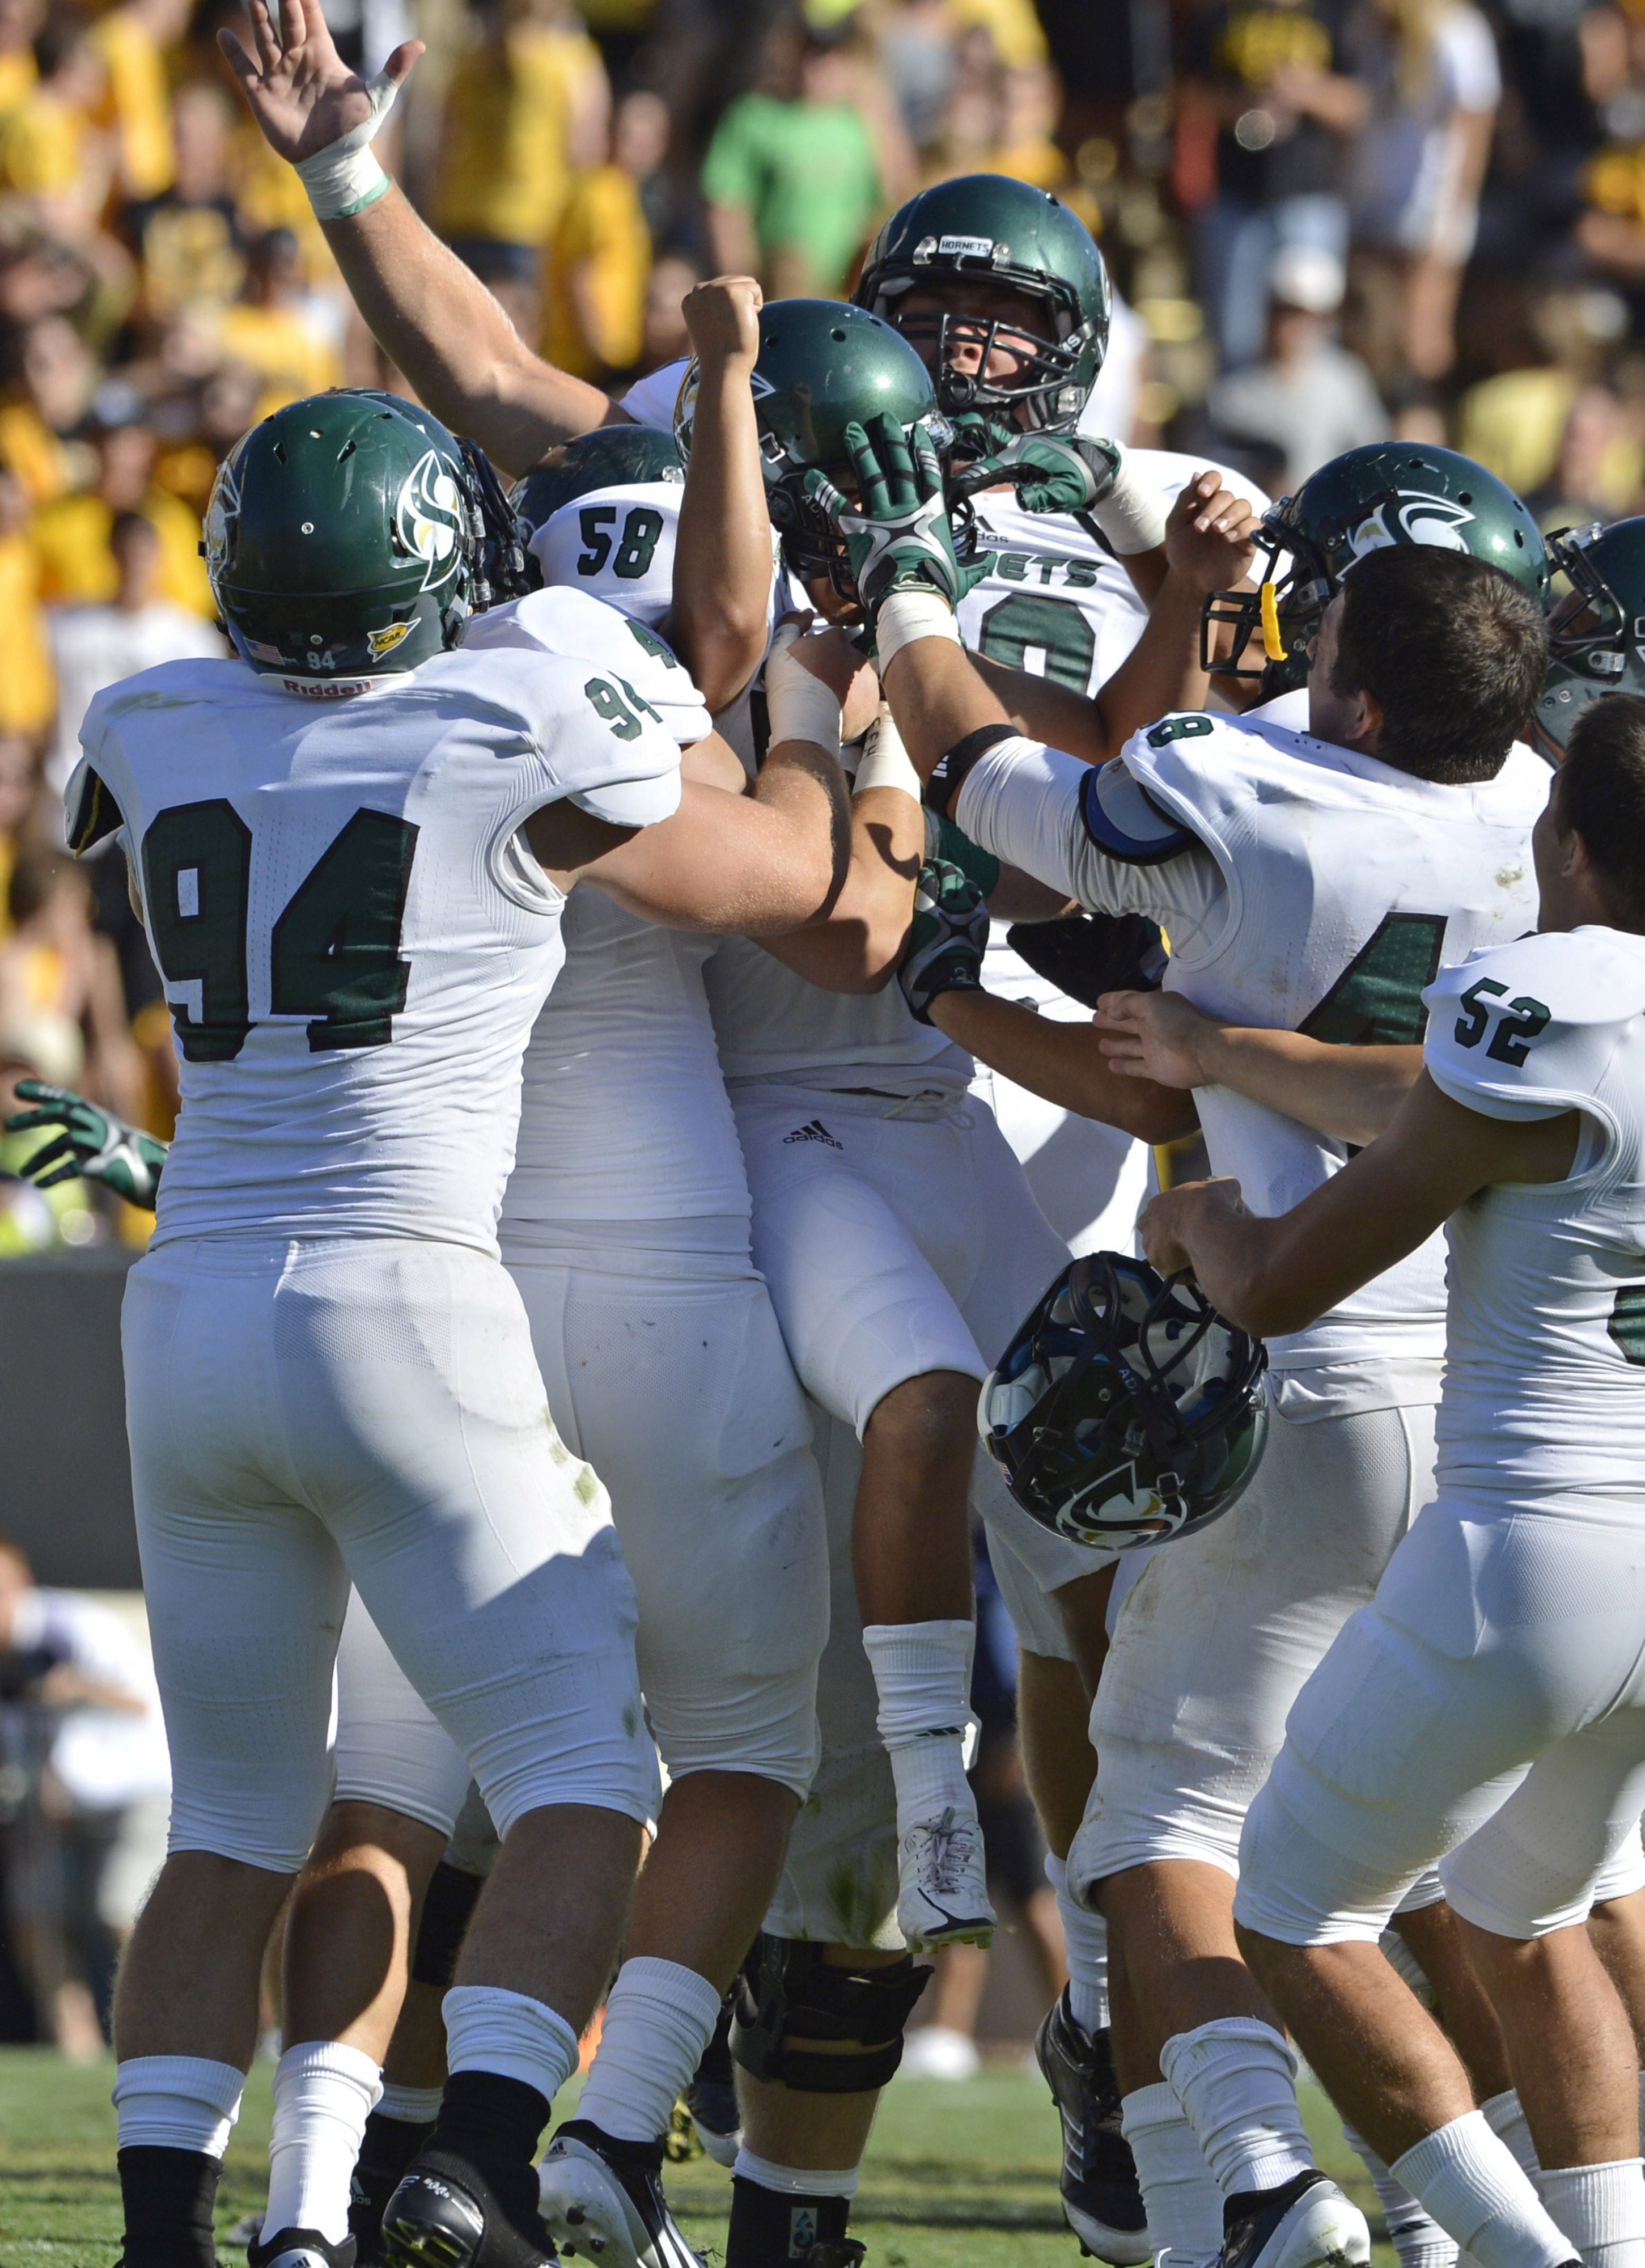 The Hornets celebrated after toppling Colorado last season.